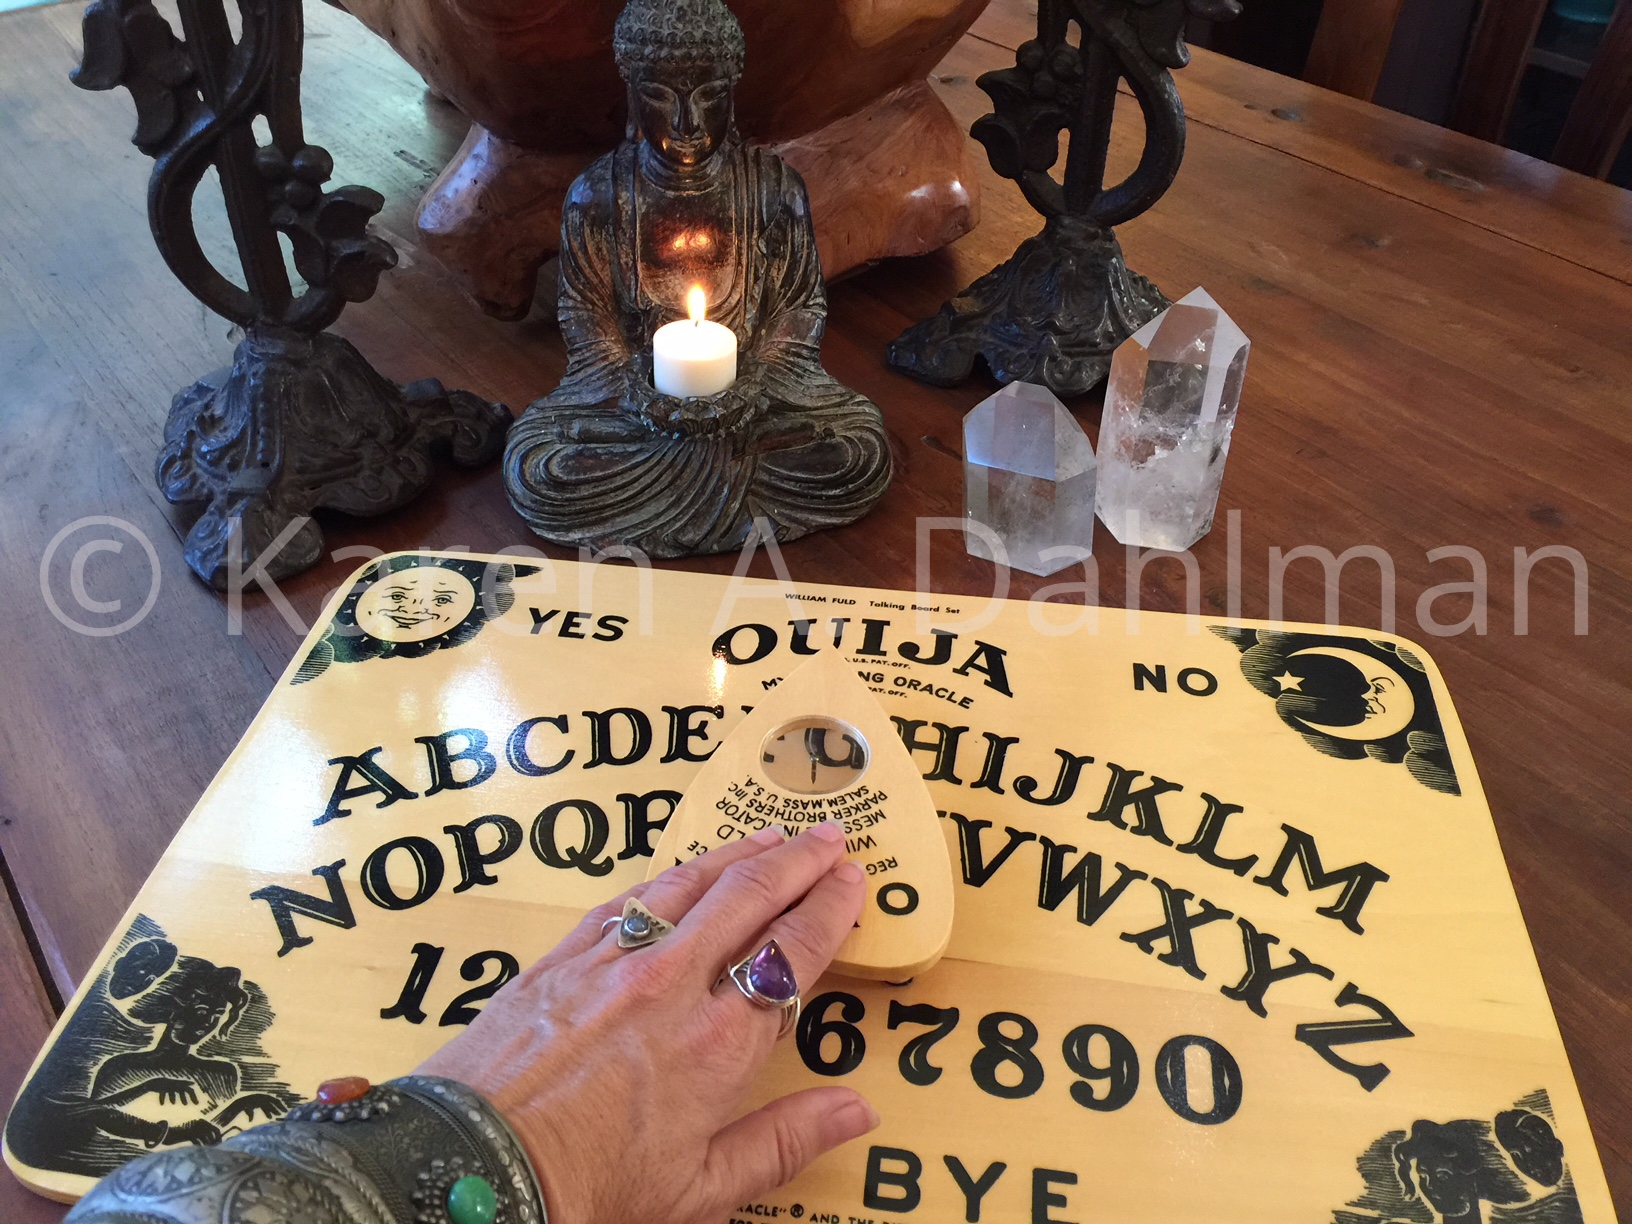 Fear (Folklore) About Using the Ouija Board Alone